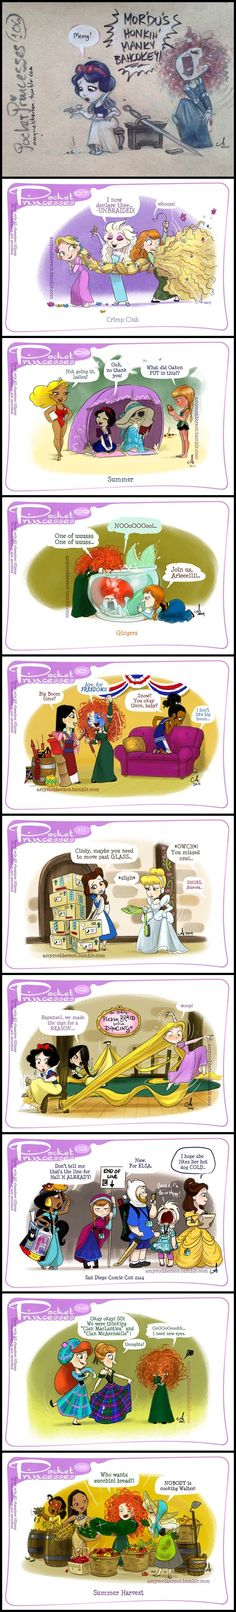 Ideas Funny Disney Comics Pocket Princesses Merida For 2019 Disney Pixar, Walt Disney, Cute Disney, Disney Girls, Disney And Dreamworks, Disney Magic, Disney Princes, Pocket Princesses, Pocket Princess Comics